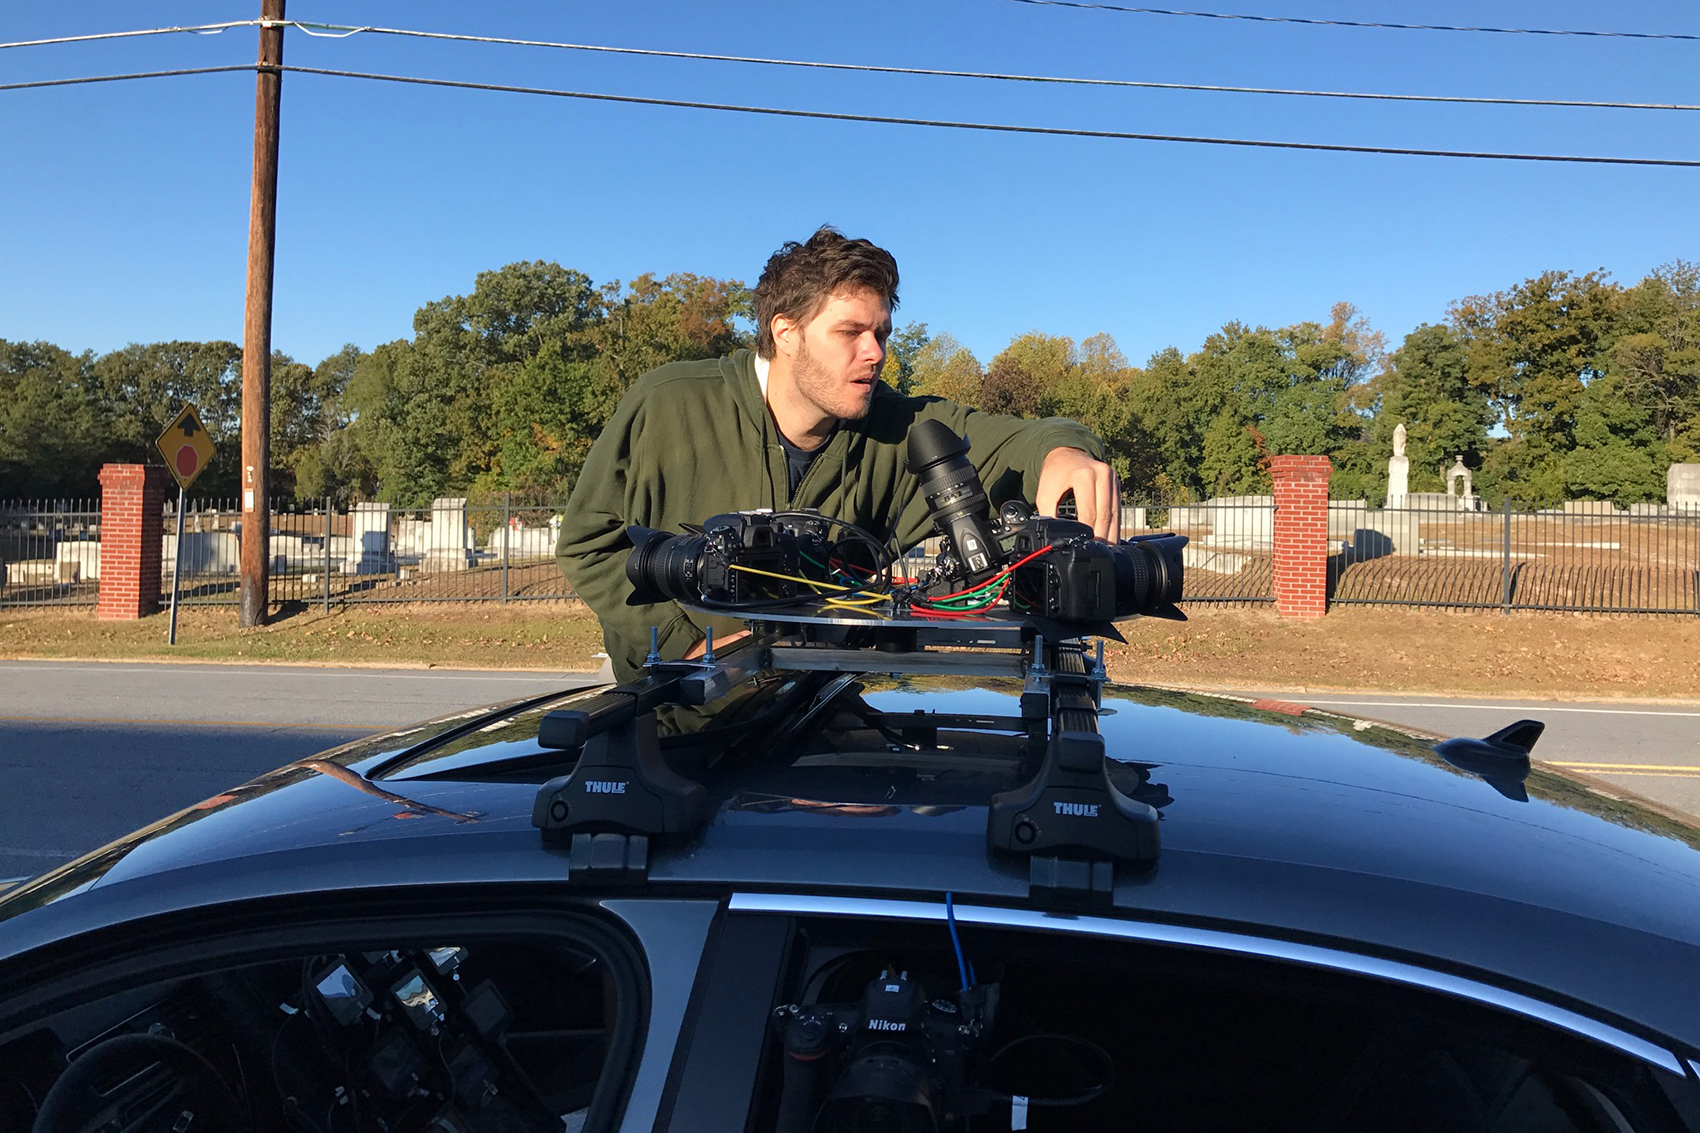 A person operates a camera rig on top of a car.